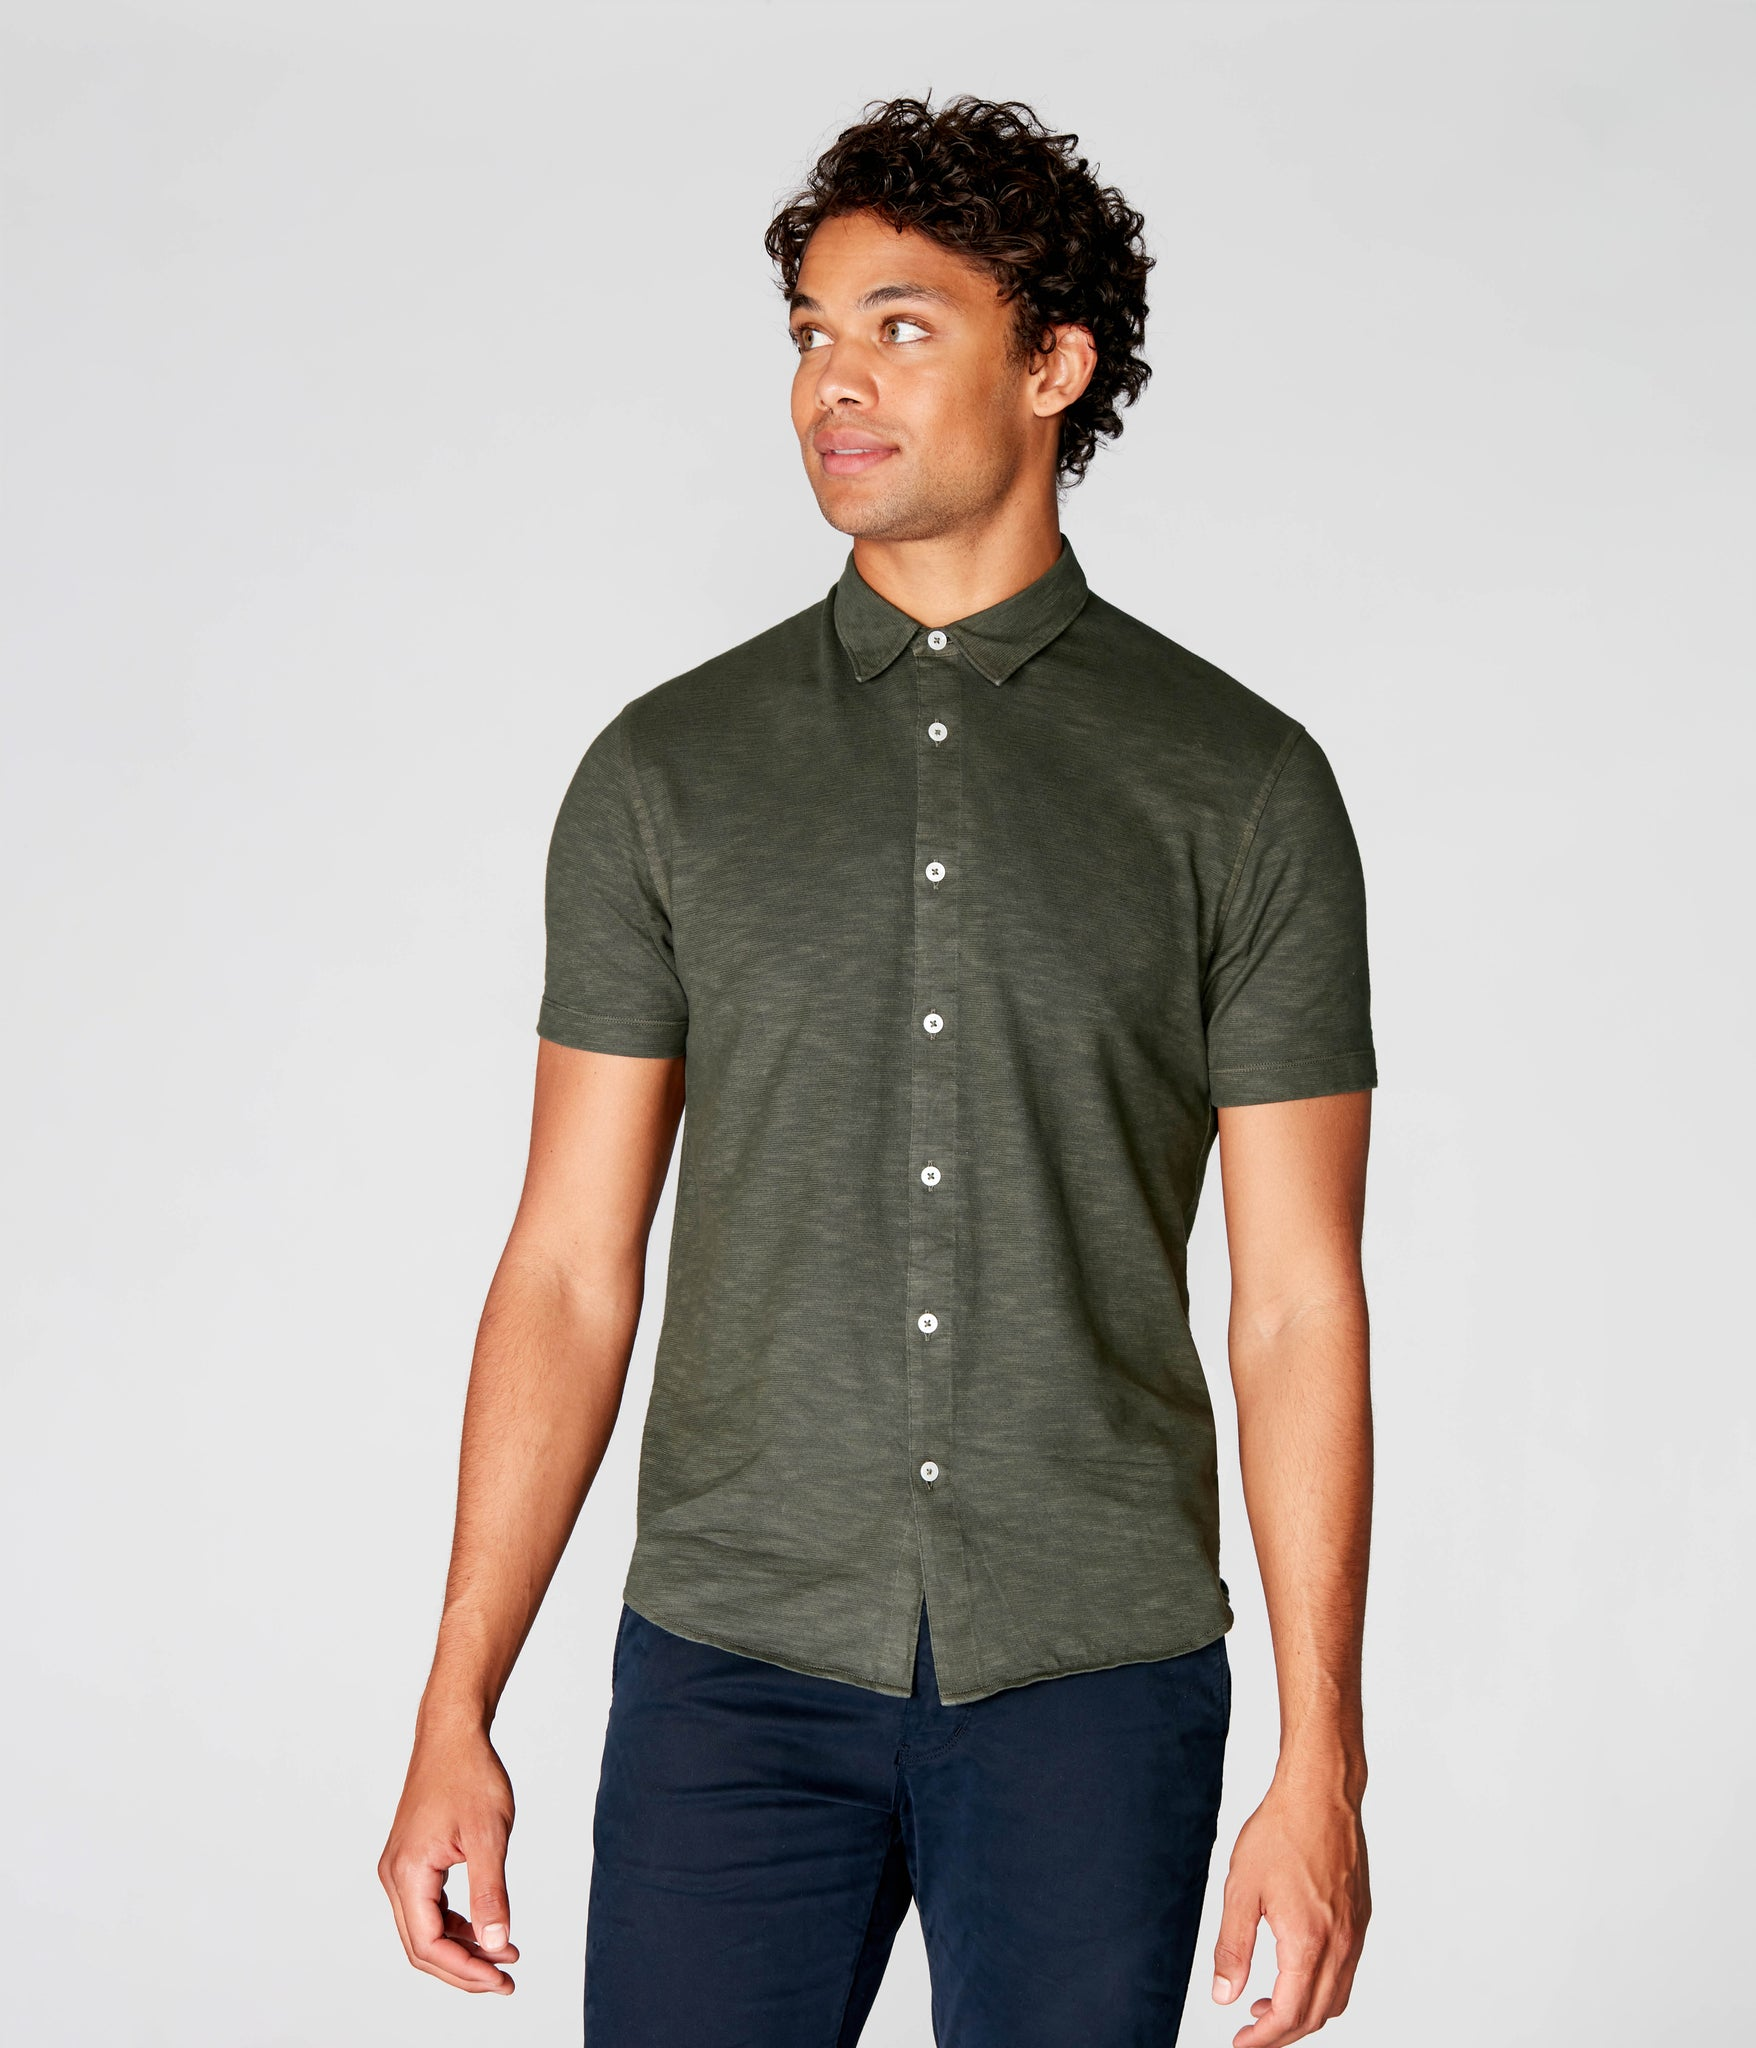 On-Point Soft Shirt in Soft Slub Jersey - Rifle Green Dark